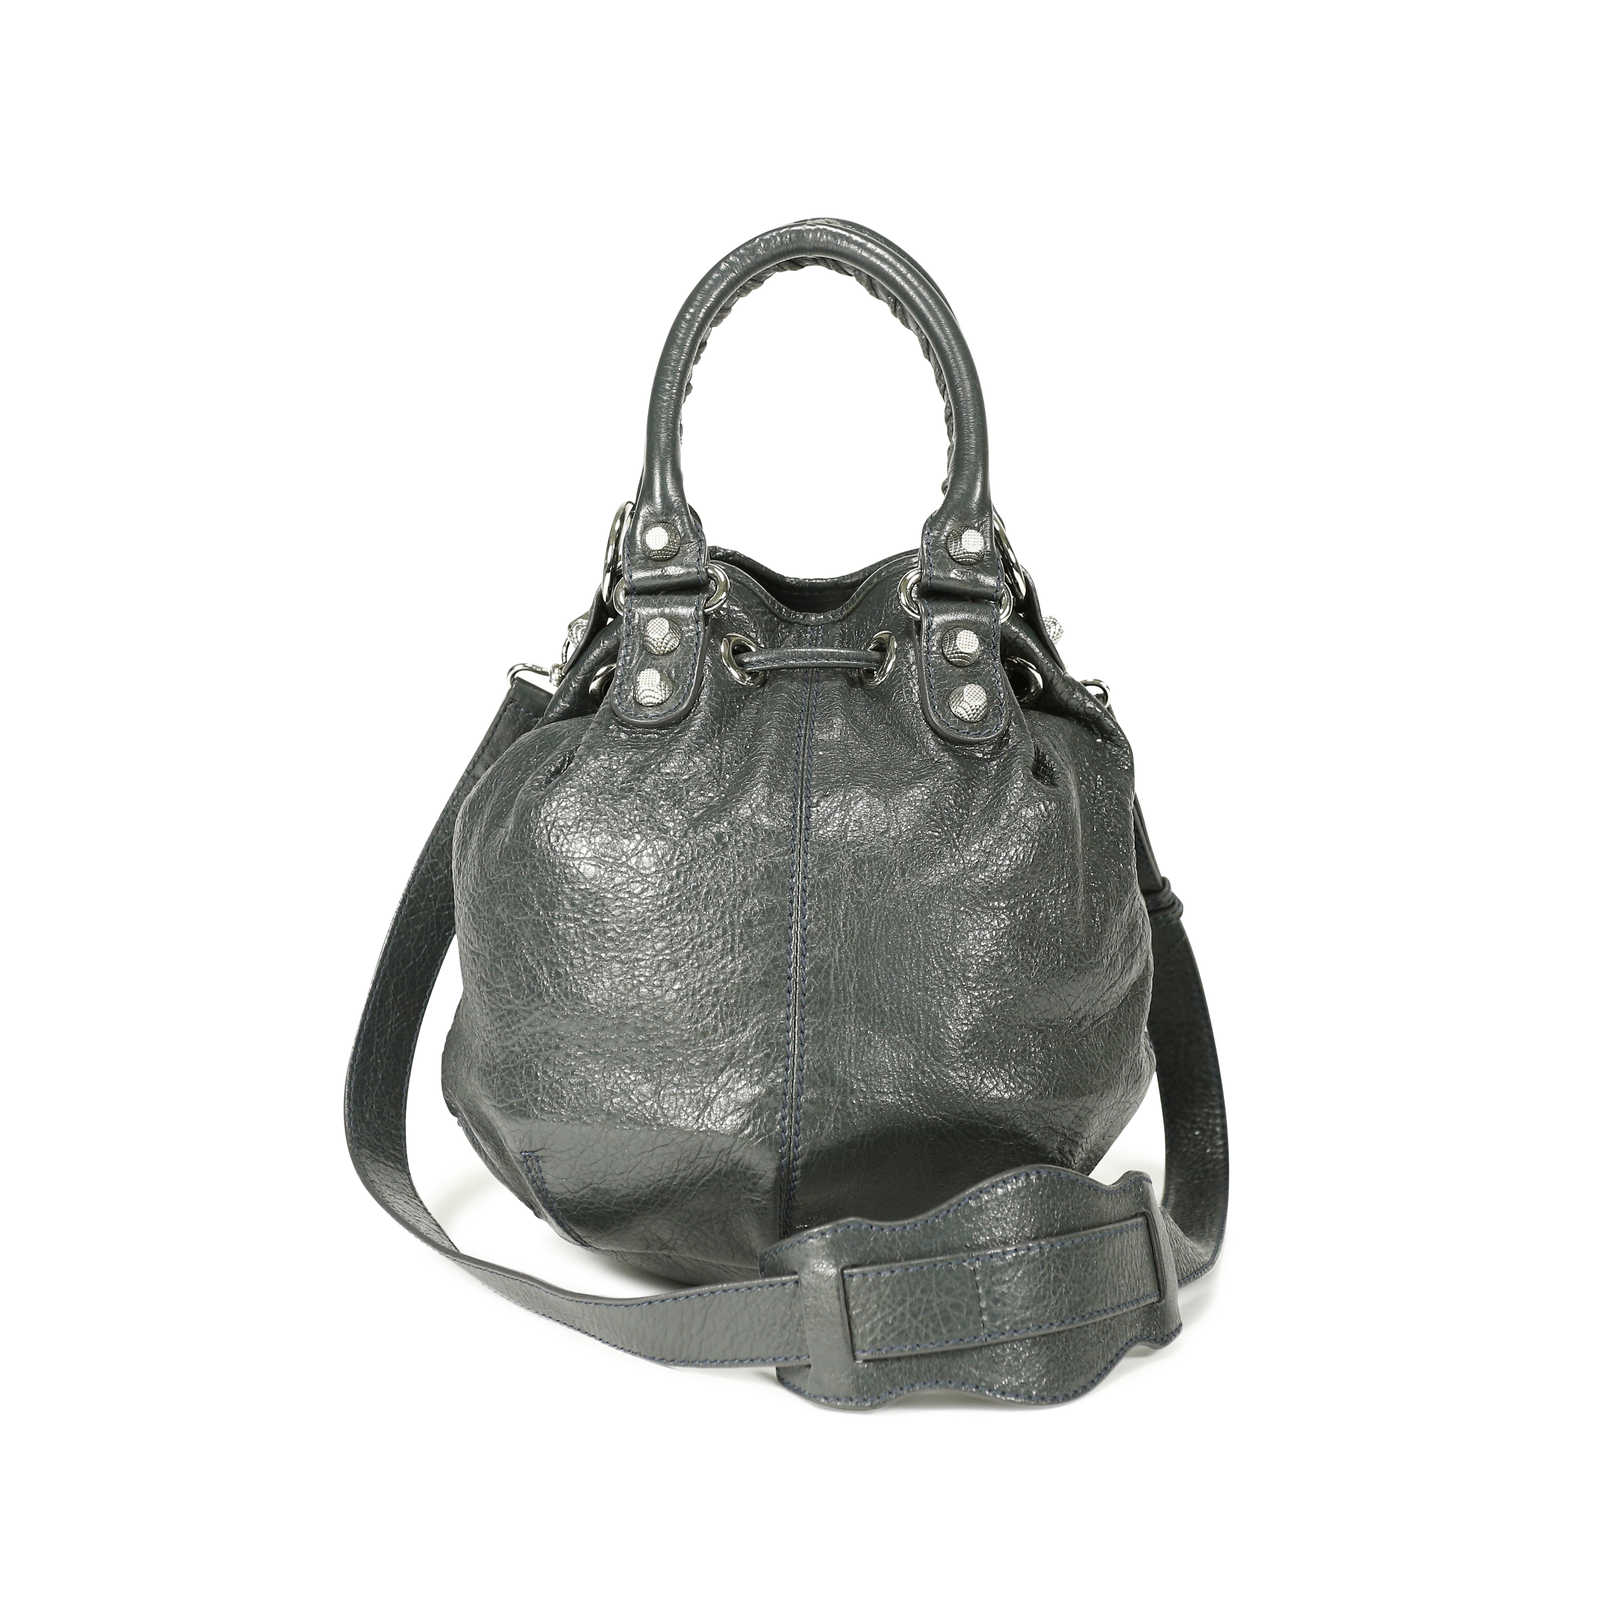 ... Authentic Pre Owned Balenciaga Mini Pompon Bag (PSS-139-00003) -  Thumbnail ... 42c195004f